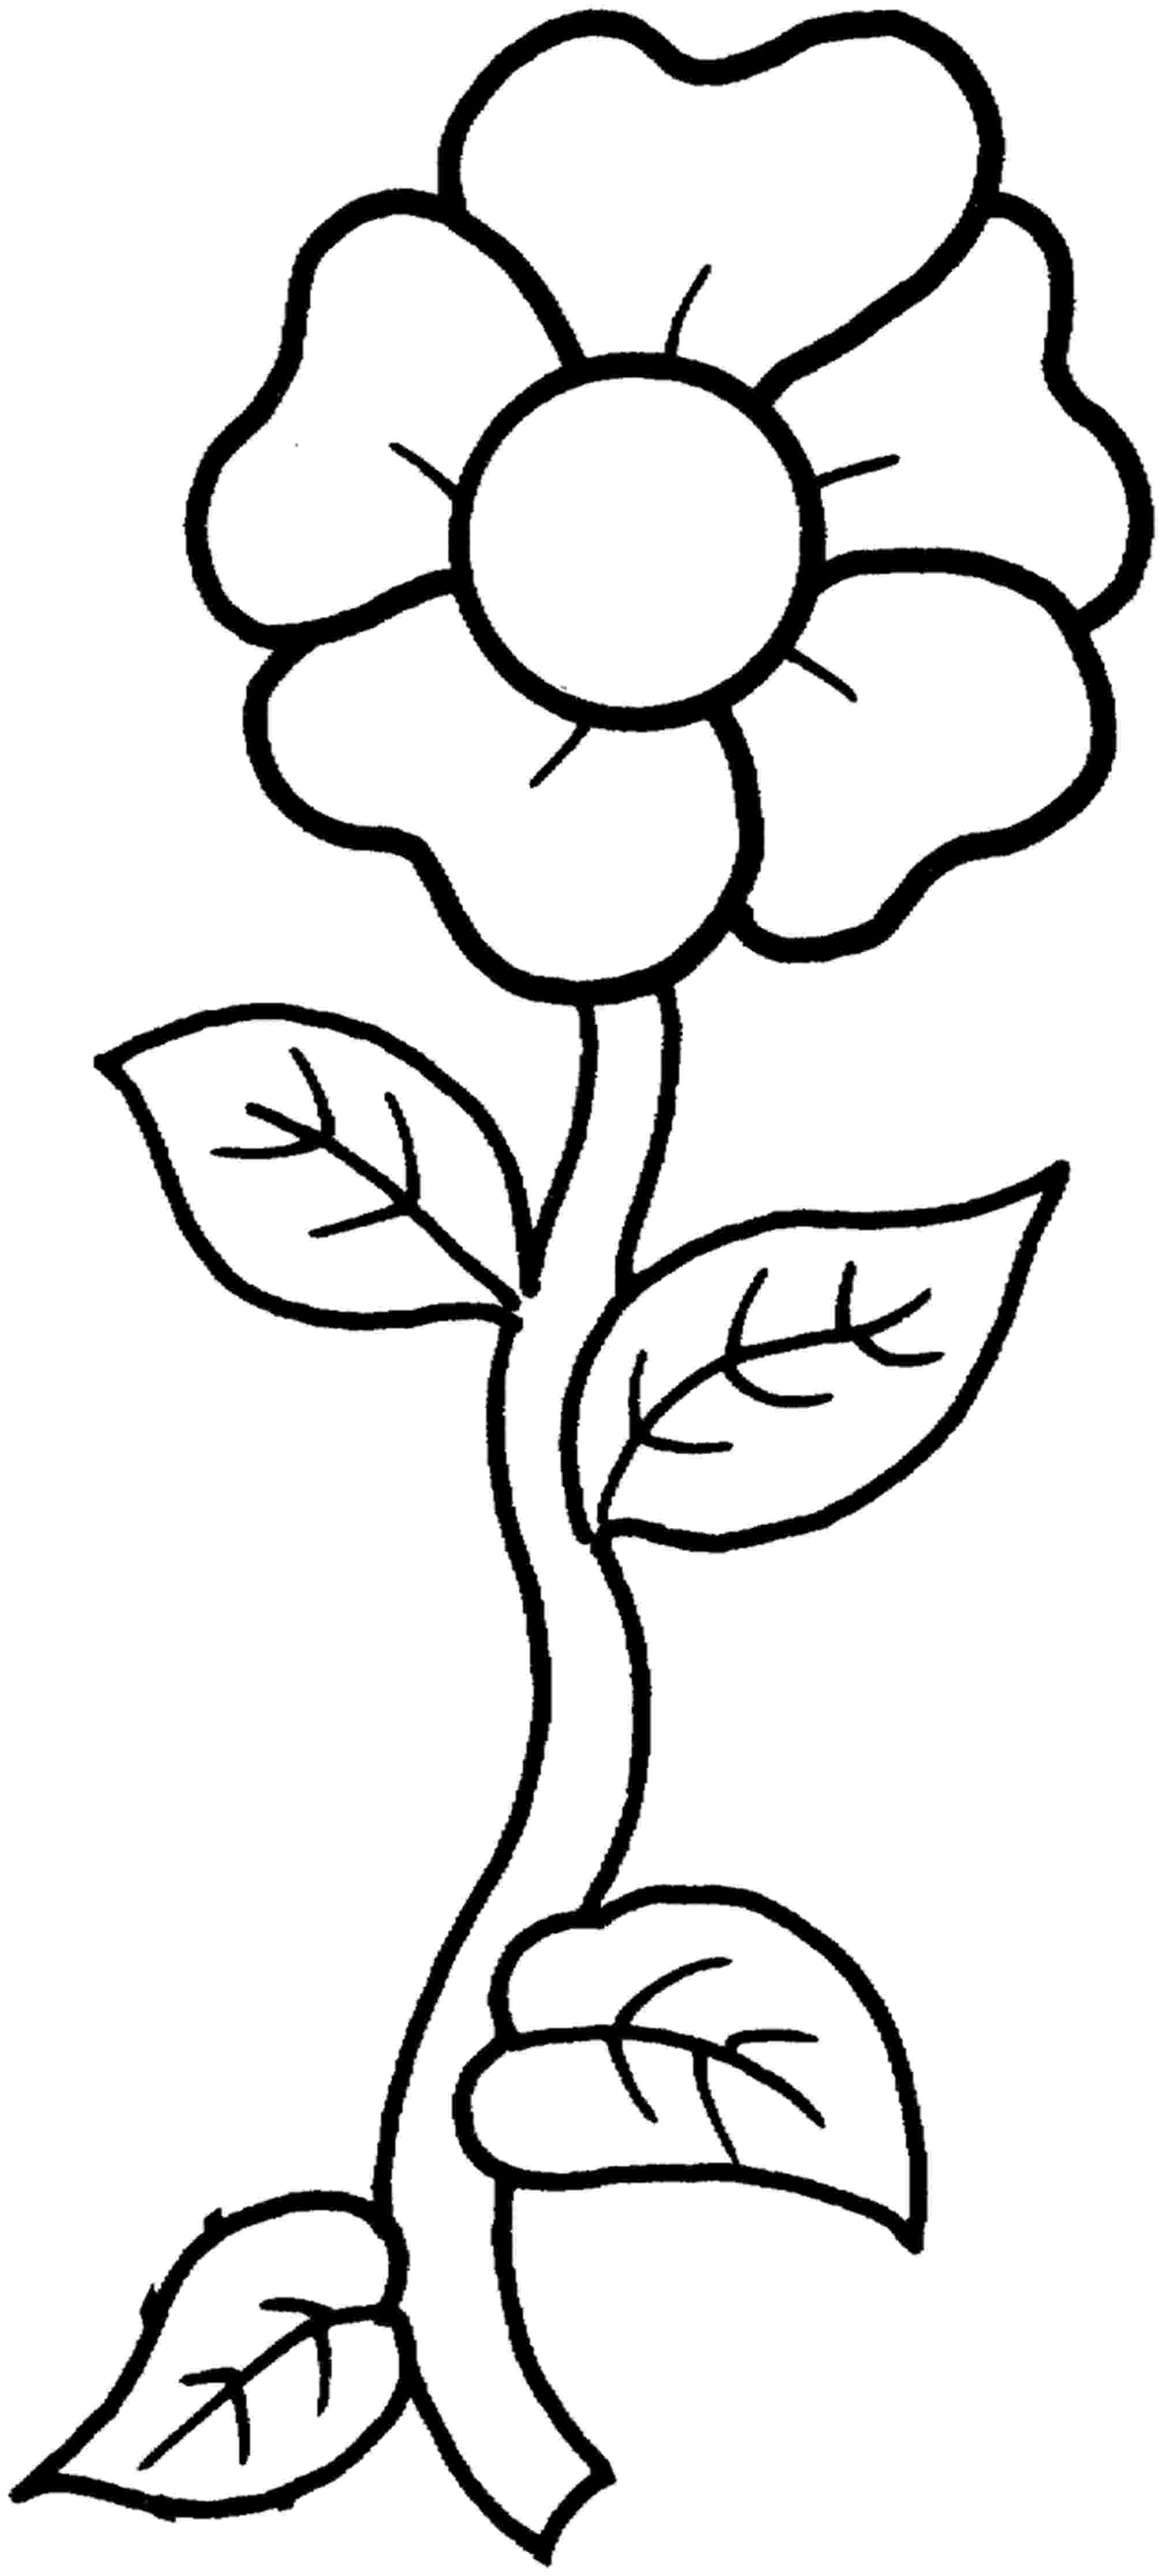 free flower pictures to print and color free printable flower coloring pages for kids best and free pictures print color flower to